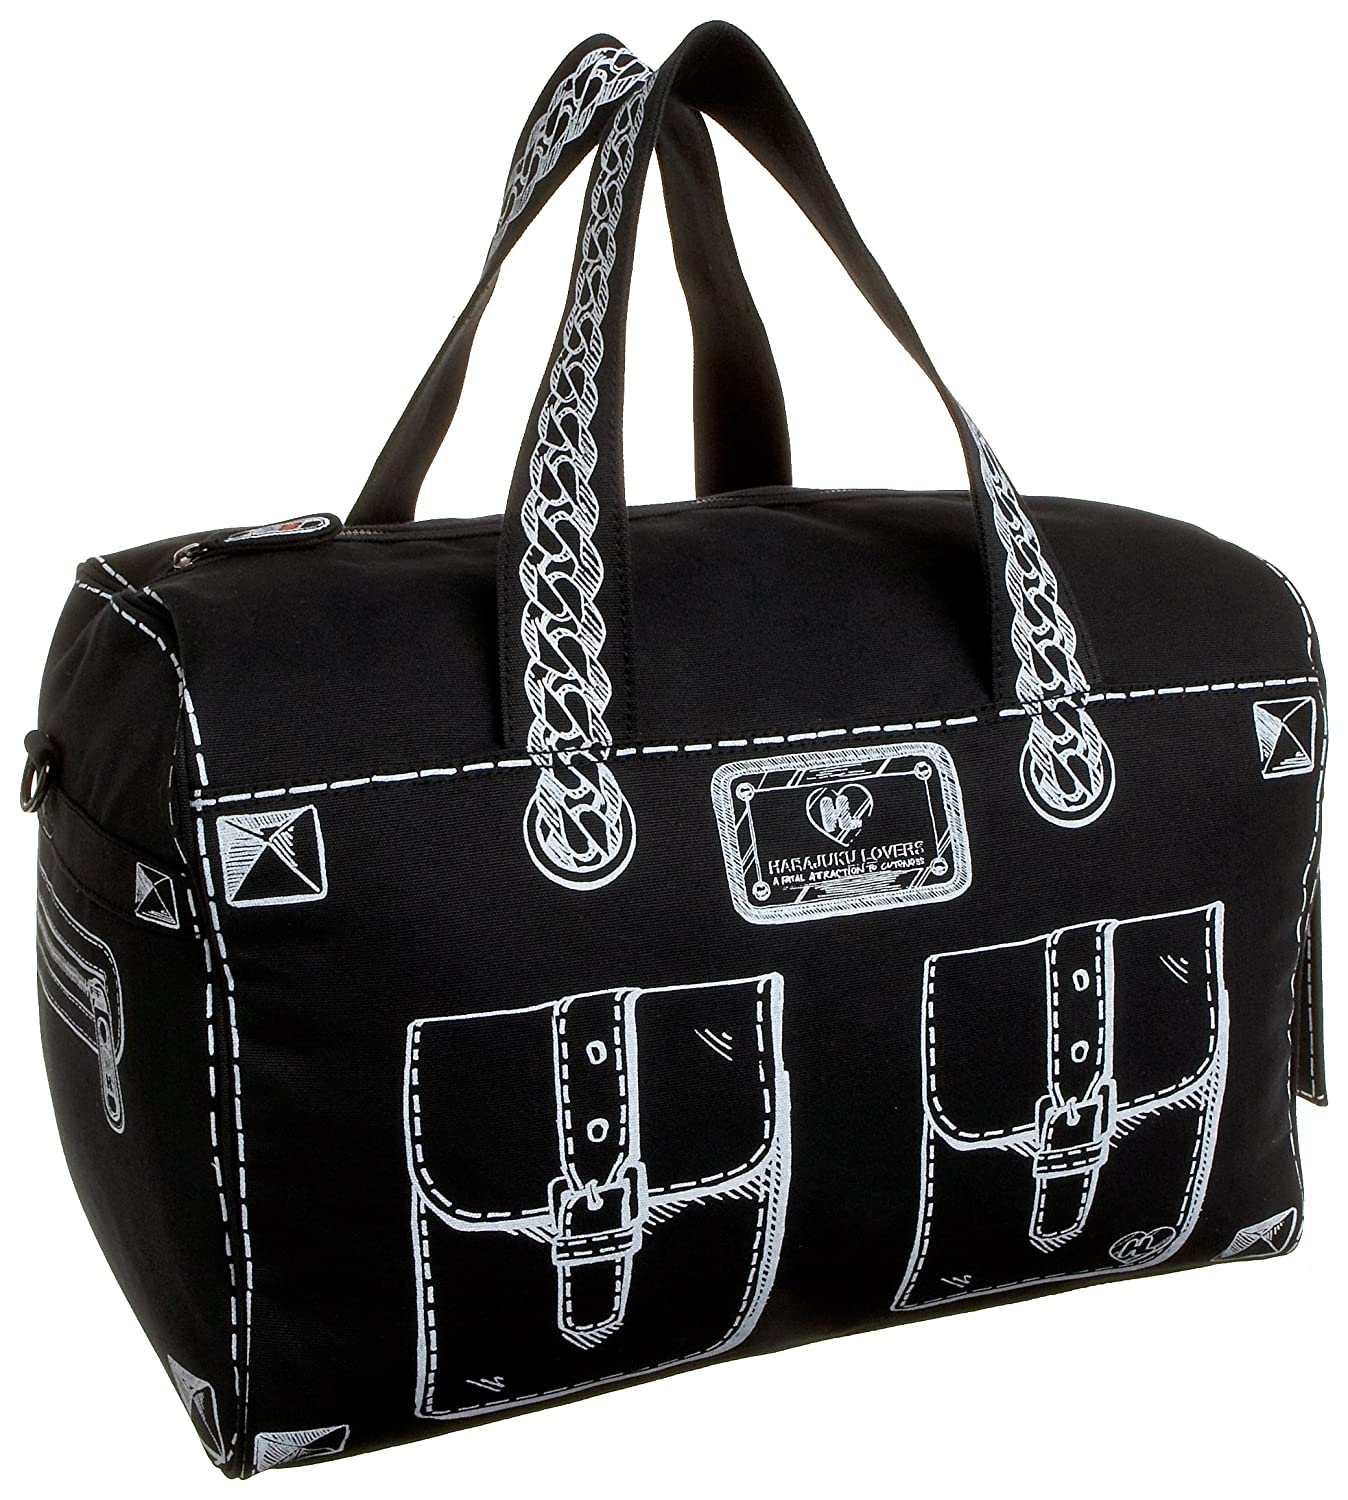 Harajuku Lovers Trompe L'oiel Trouble Satchel - Free Overnight Shipping & Return Shipping: Endless.com from endless.com